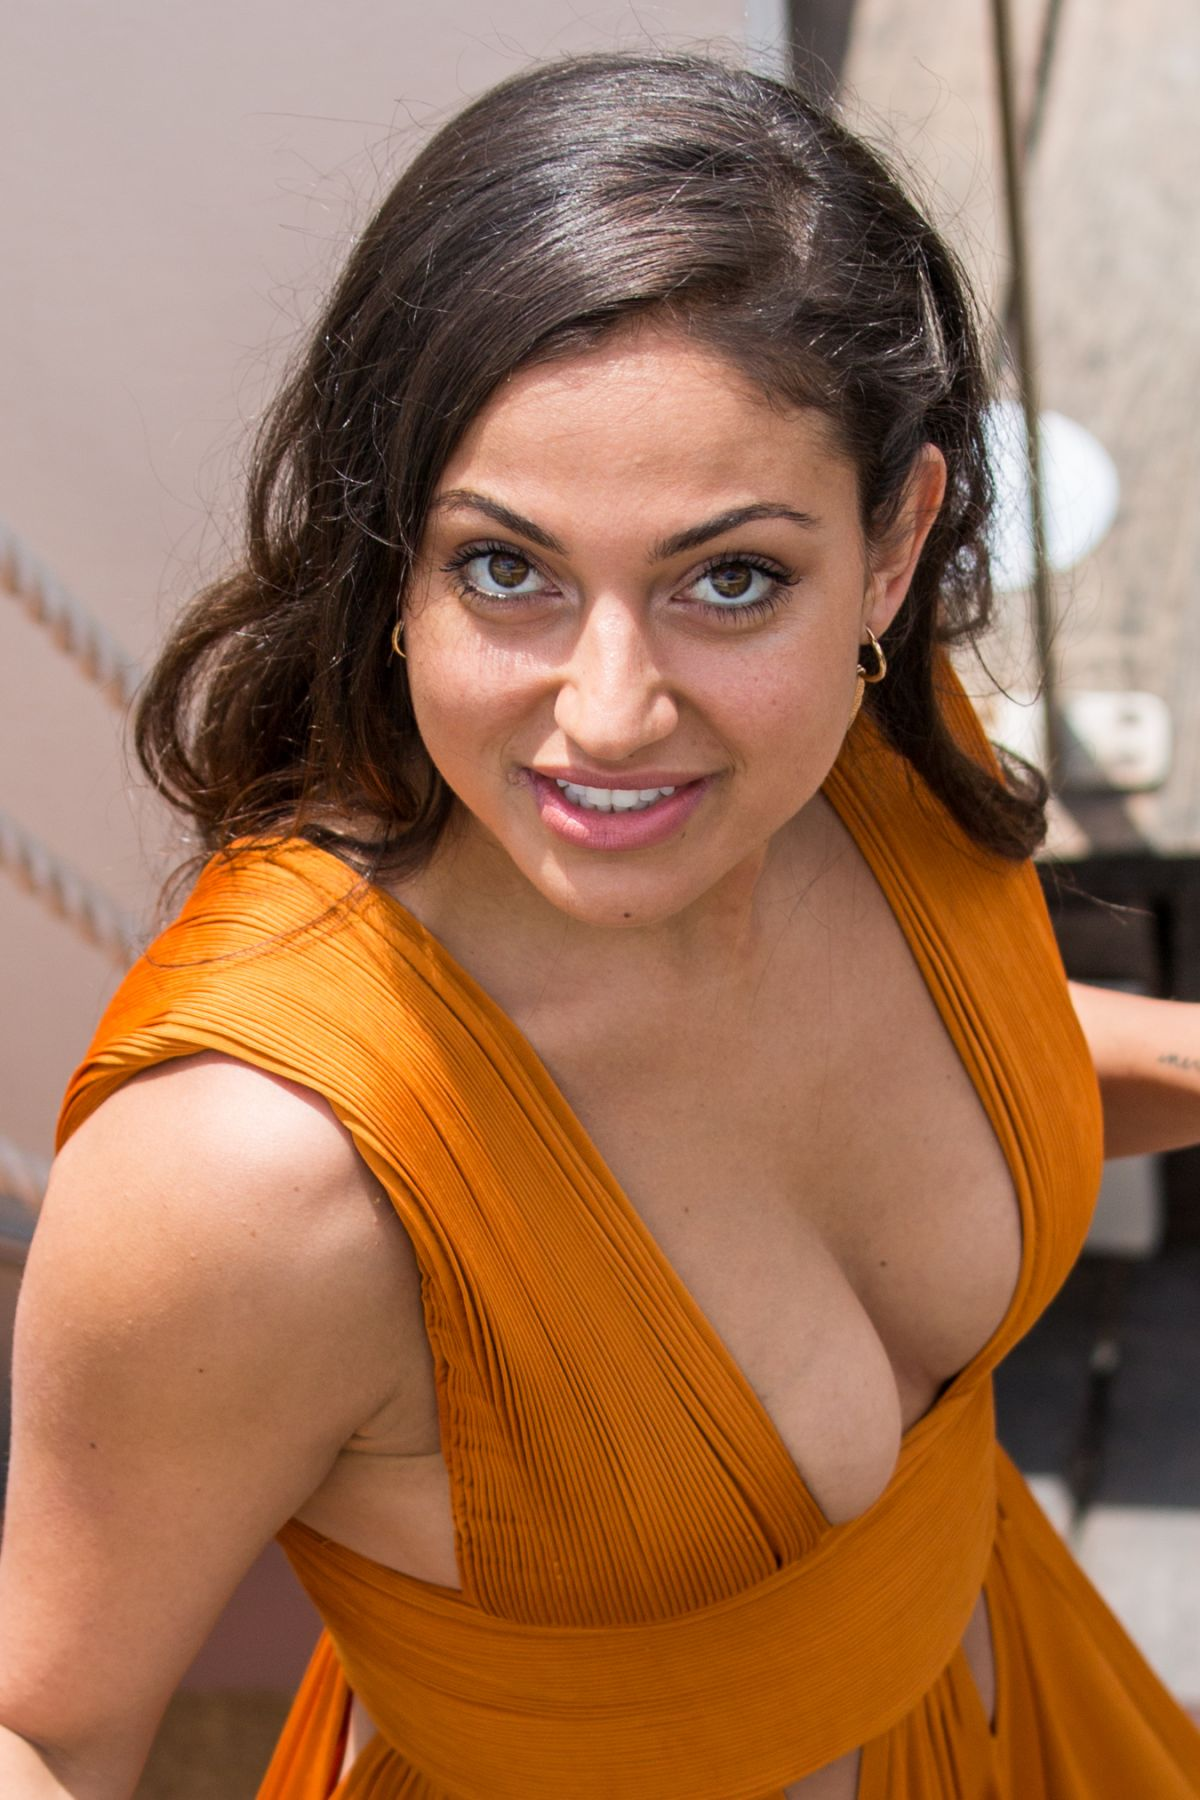 Young Inanna Sarkis naked (67 photos), Sexy, Fappening, Feet, lingerie 2018